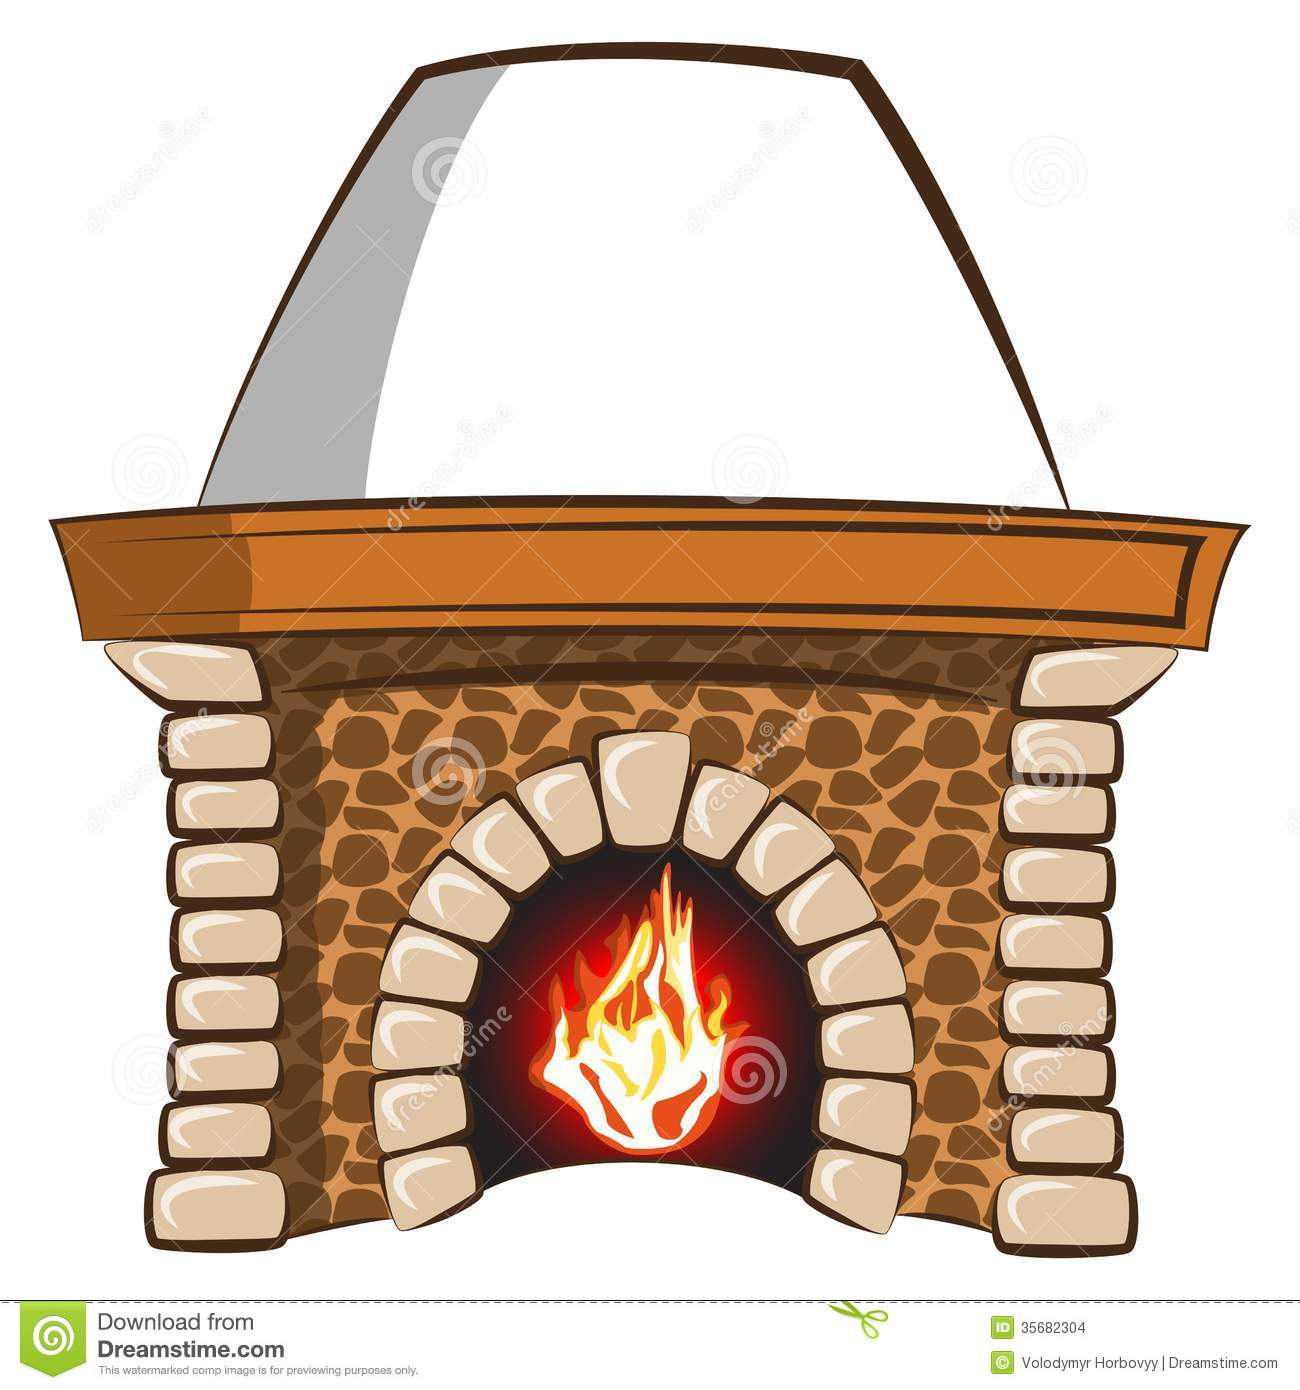 Stock Images Fireplace Stone Flame Separated Vector Elements Image35682304 in addition Designservices additionally Small One Story House Plans likewise Watch besides Royalty Free Stock Photos Farm Theme Image 4 Image24292028. on program to draw house plans